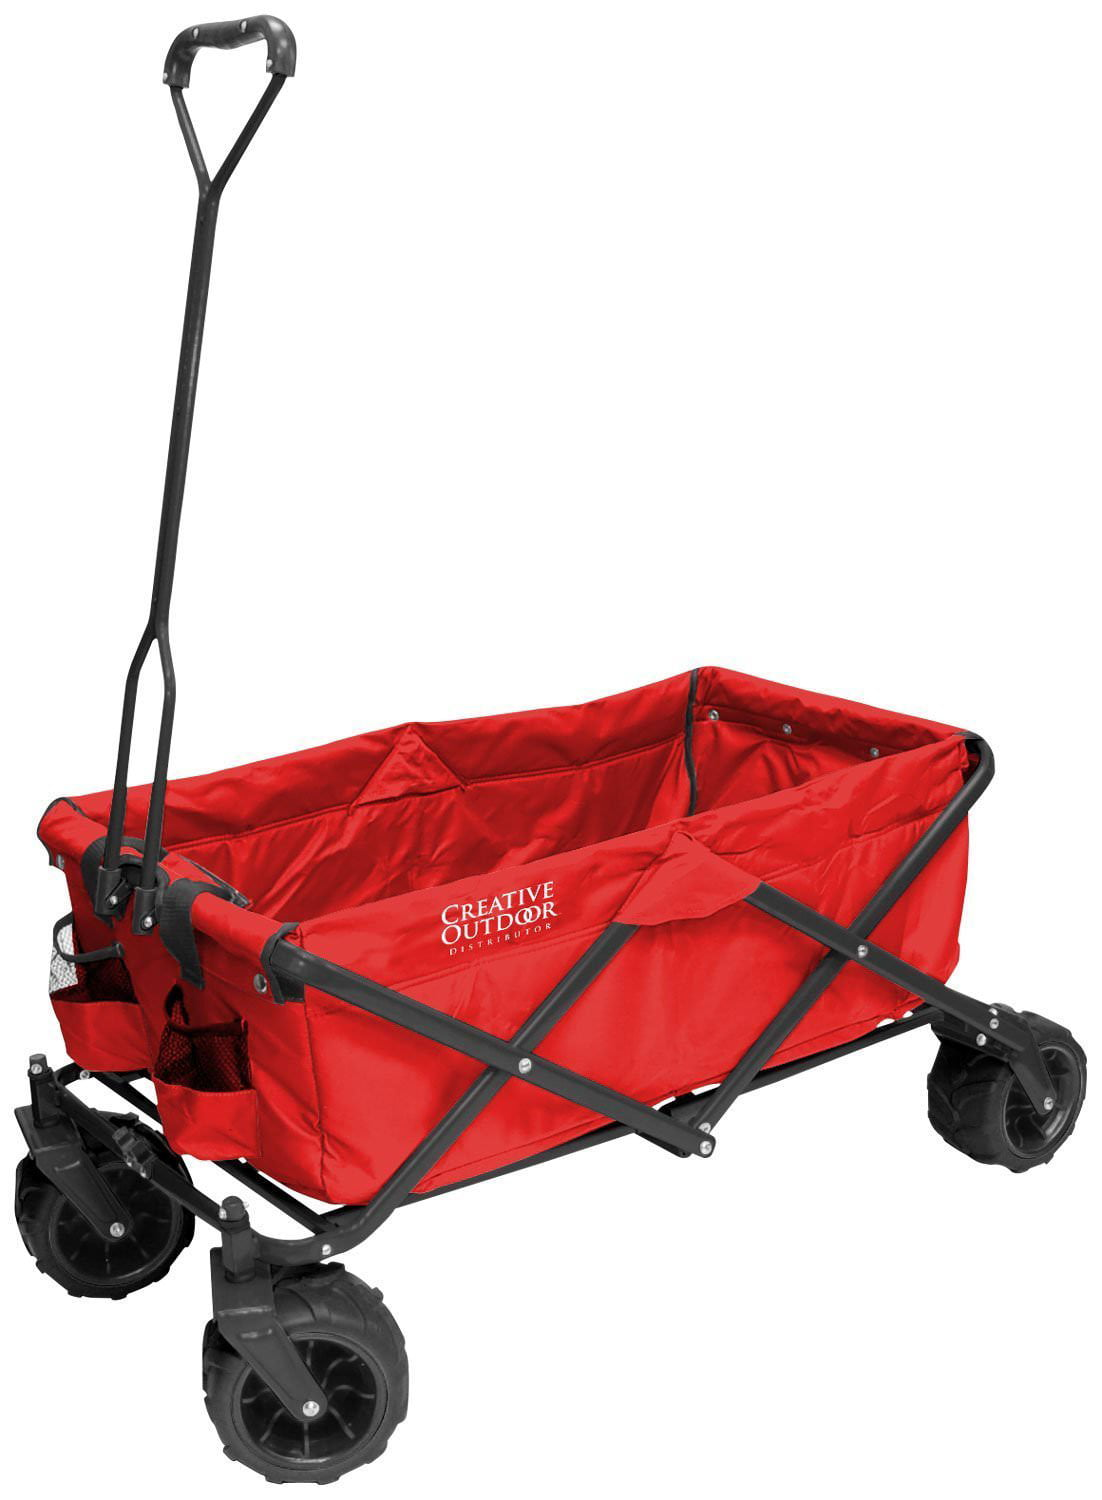 All-Terrain Folding Wagon, (Red) Multipurpose Cart by CREATIVE OUTDOOR DISTRIBUTOR USA